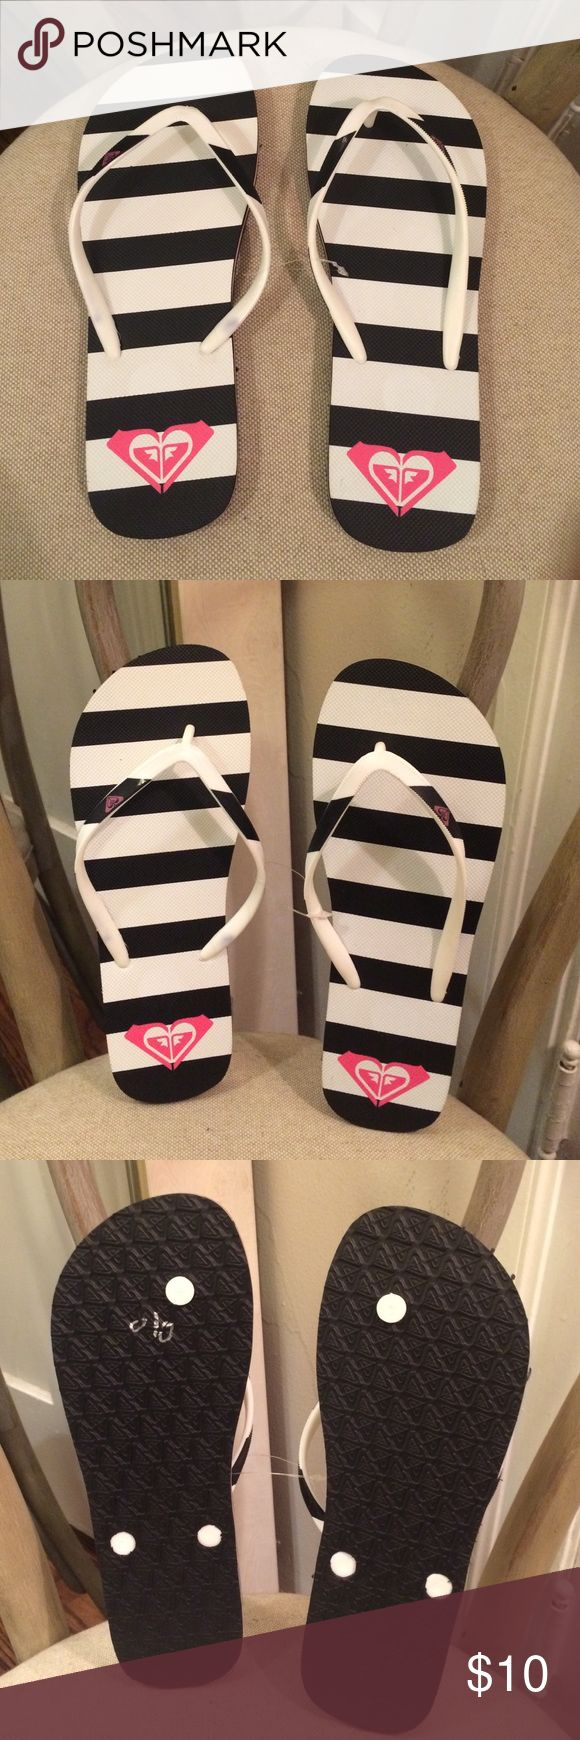 Navy Blue & White Striped Flip Flops Size 8/9. New never worn. Price firm. Bundle & Save Shoes